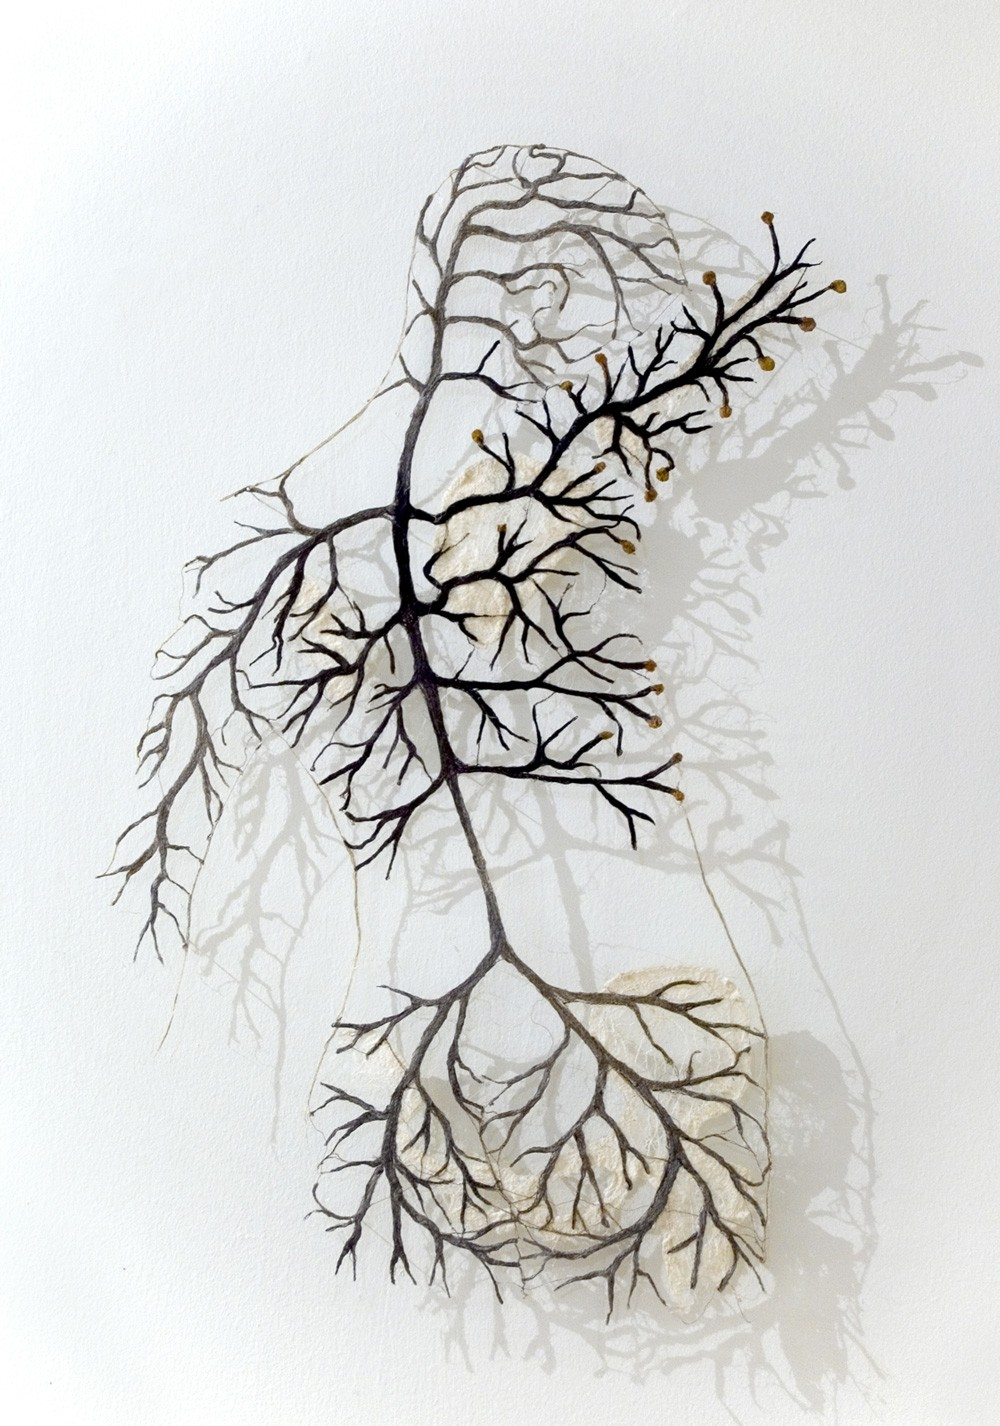 Textile Bodies Reveal Branched Systems of Veins, Flowers and Roots by Raija Jokinen